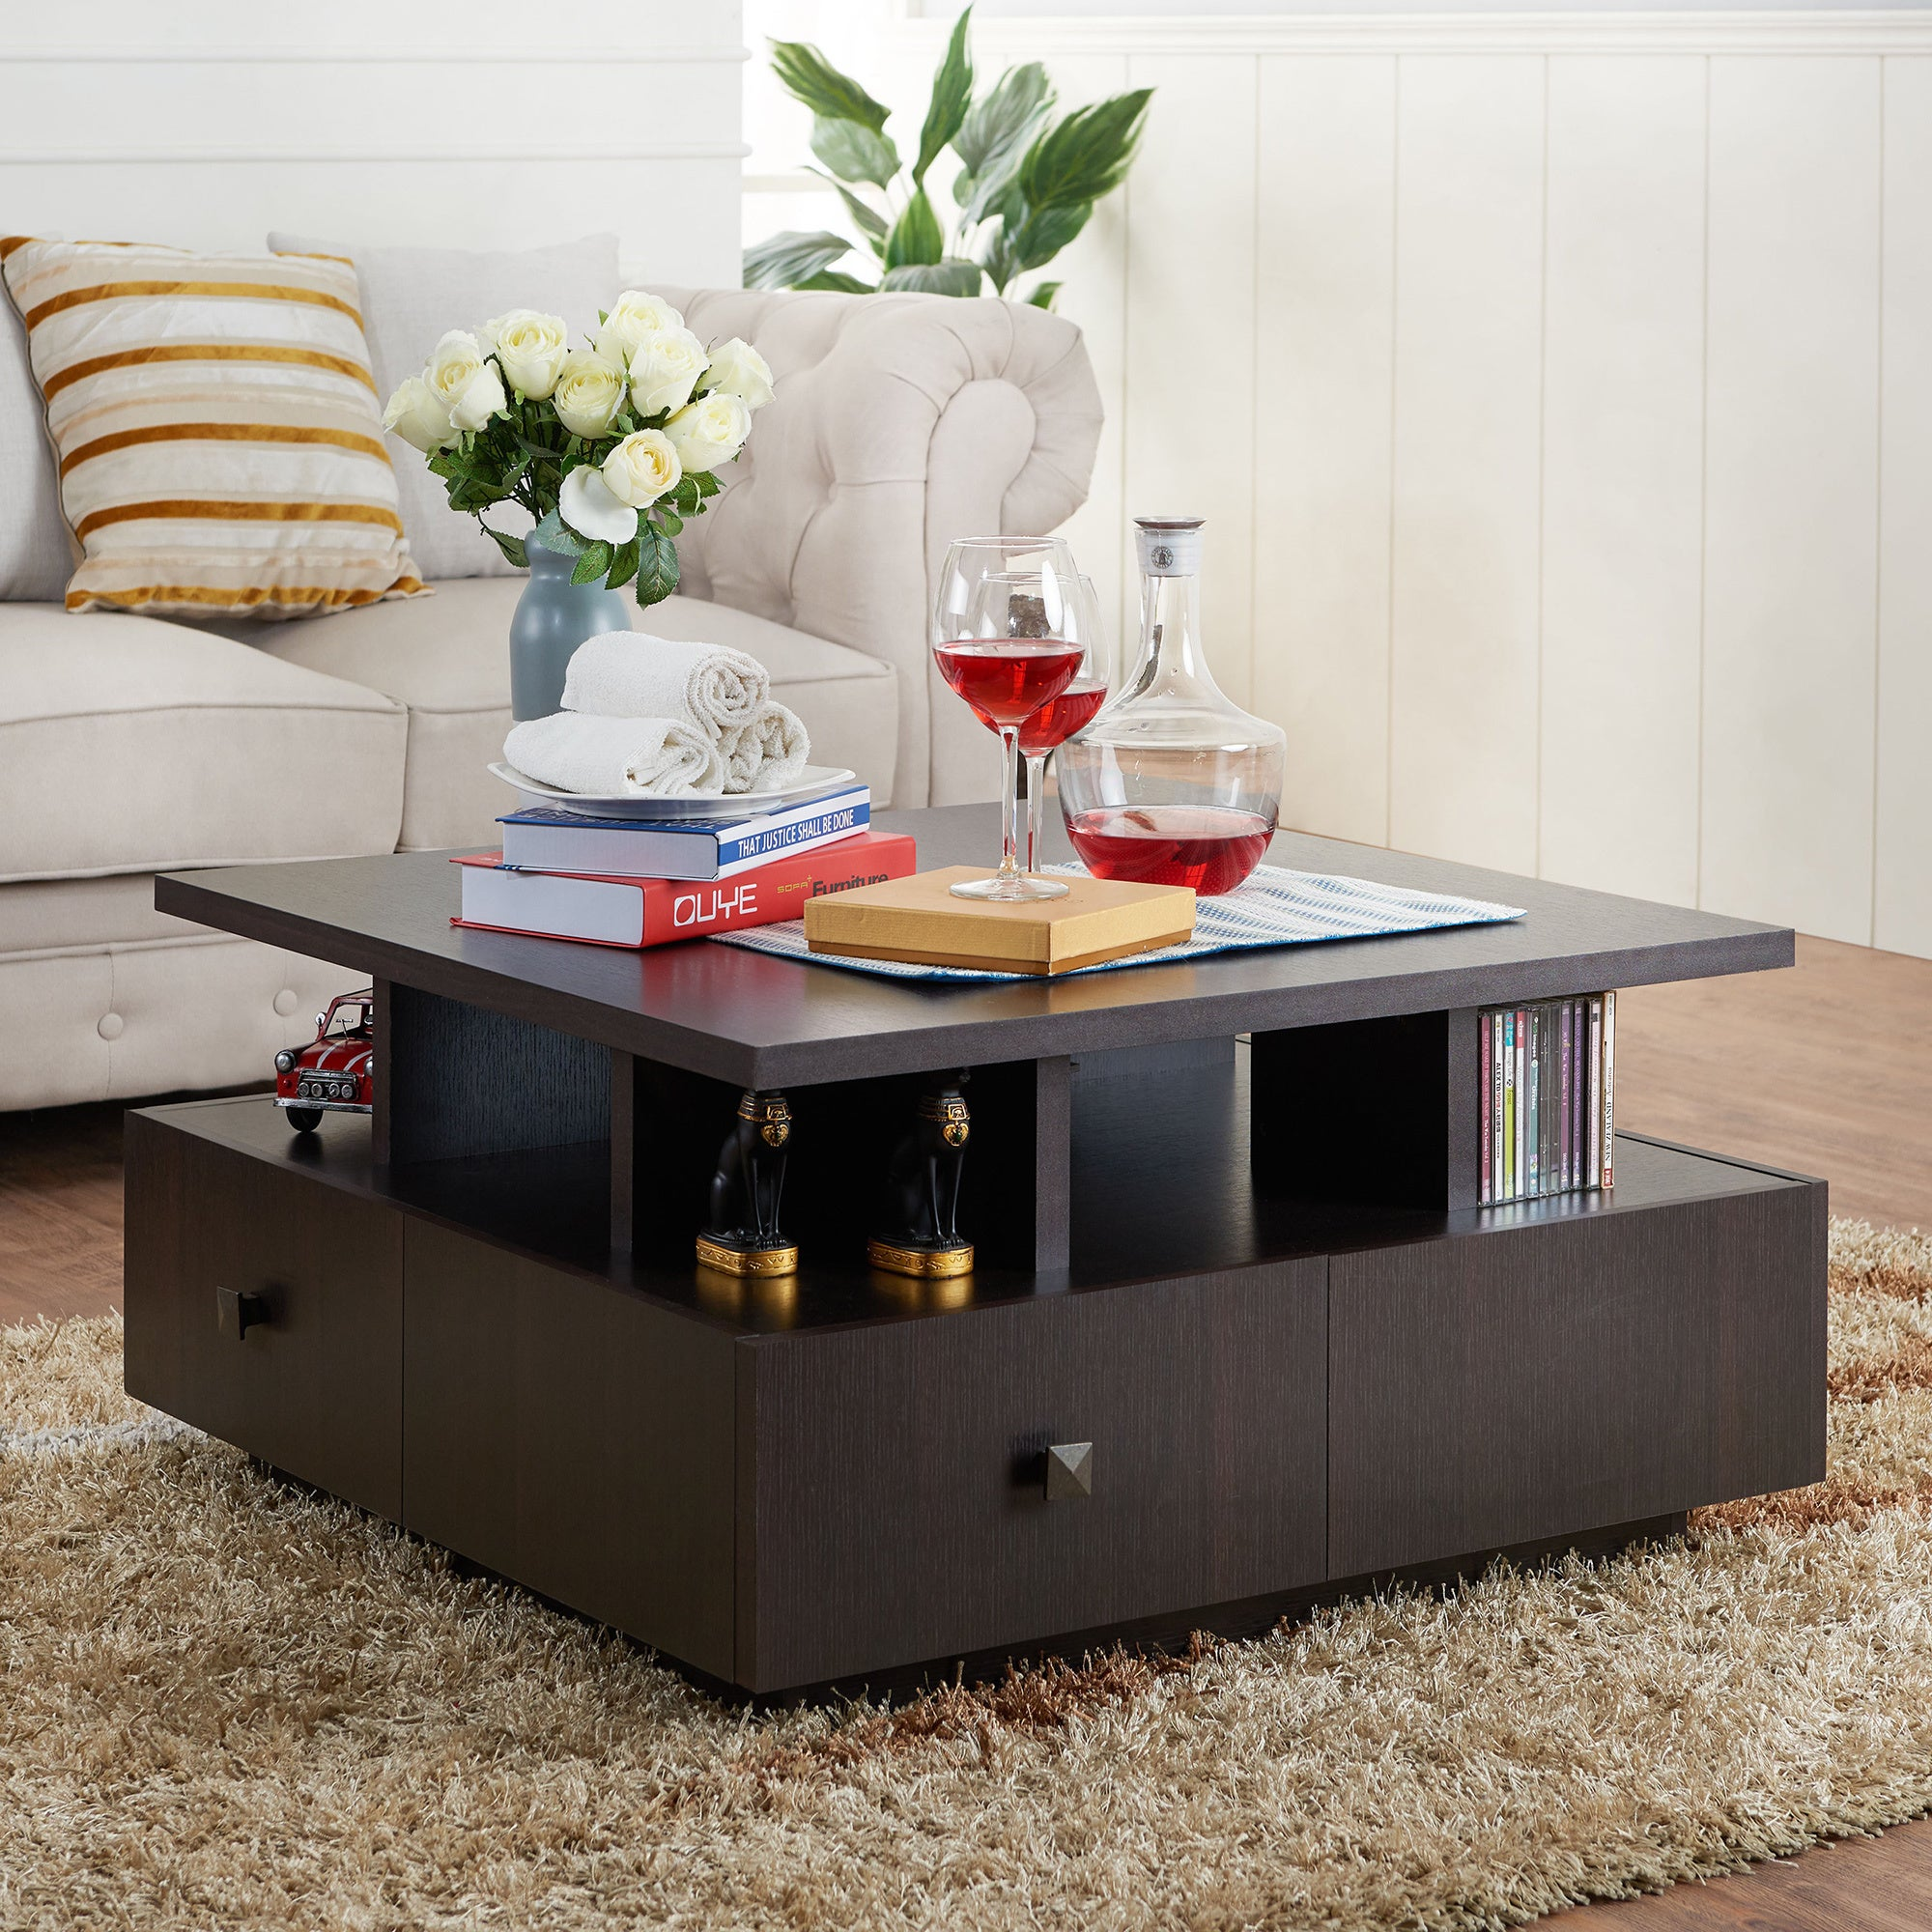 Shop furniture of america terrenal tiered espresso 4 drawer coffee table on sale free shipping today overstock com 11104778